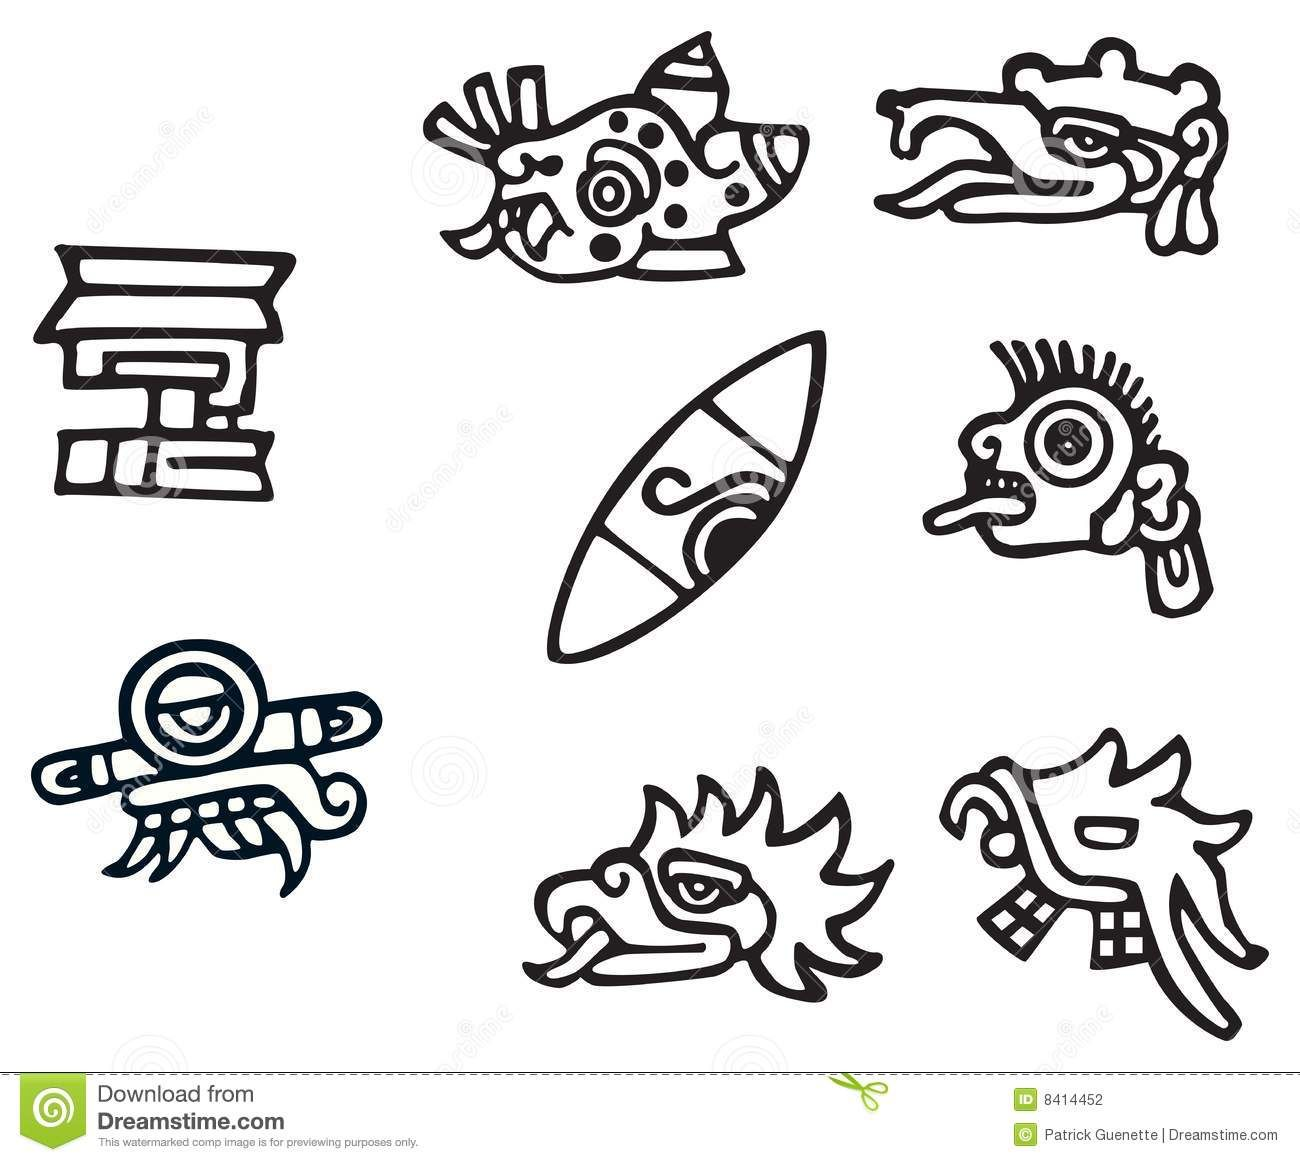 Aztec Chameleon Tattoo: Great Symbols - Google Search